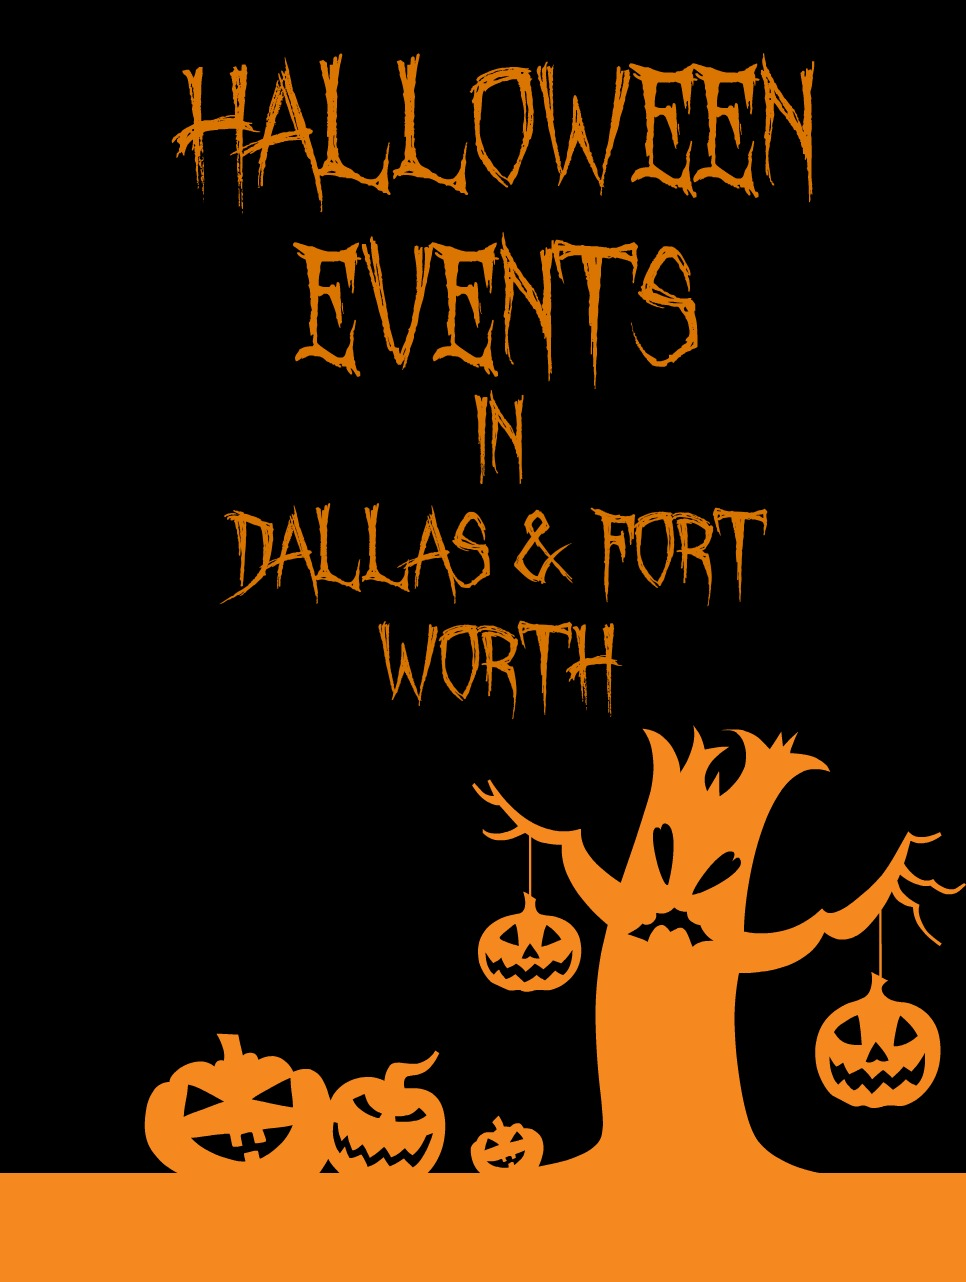 Top 7 Halloween Events in DFW | Dallas & Fort Worth | 2016